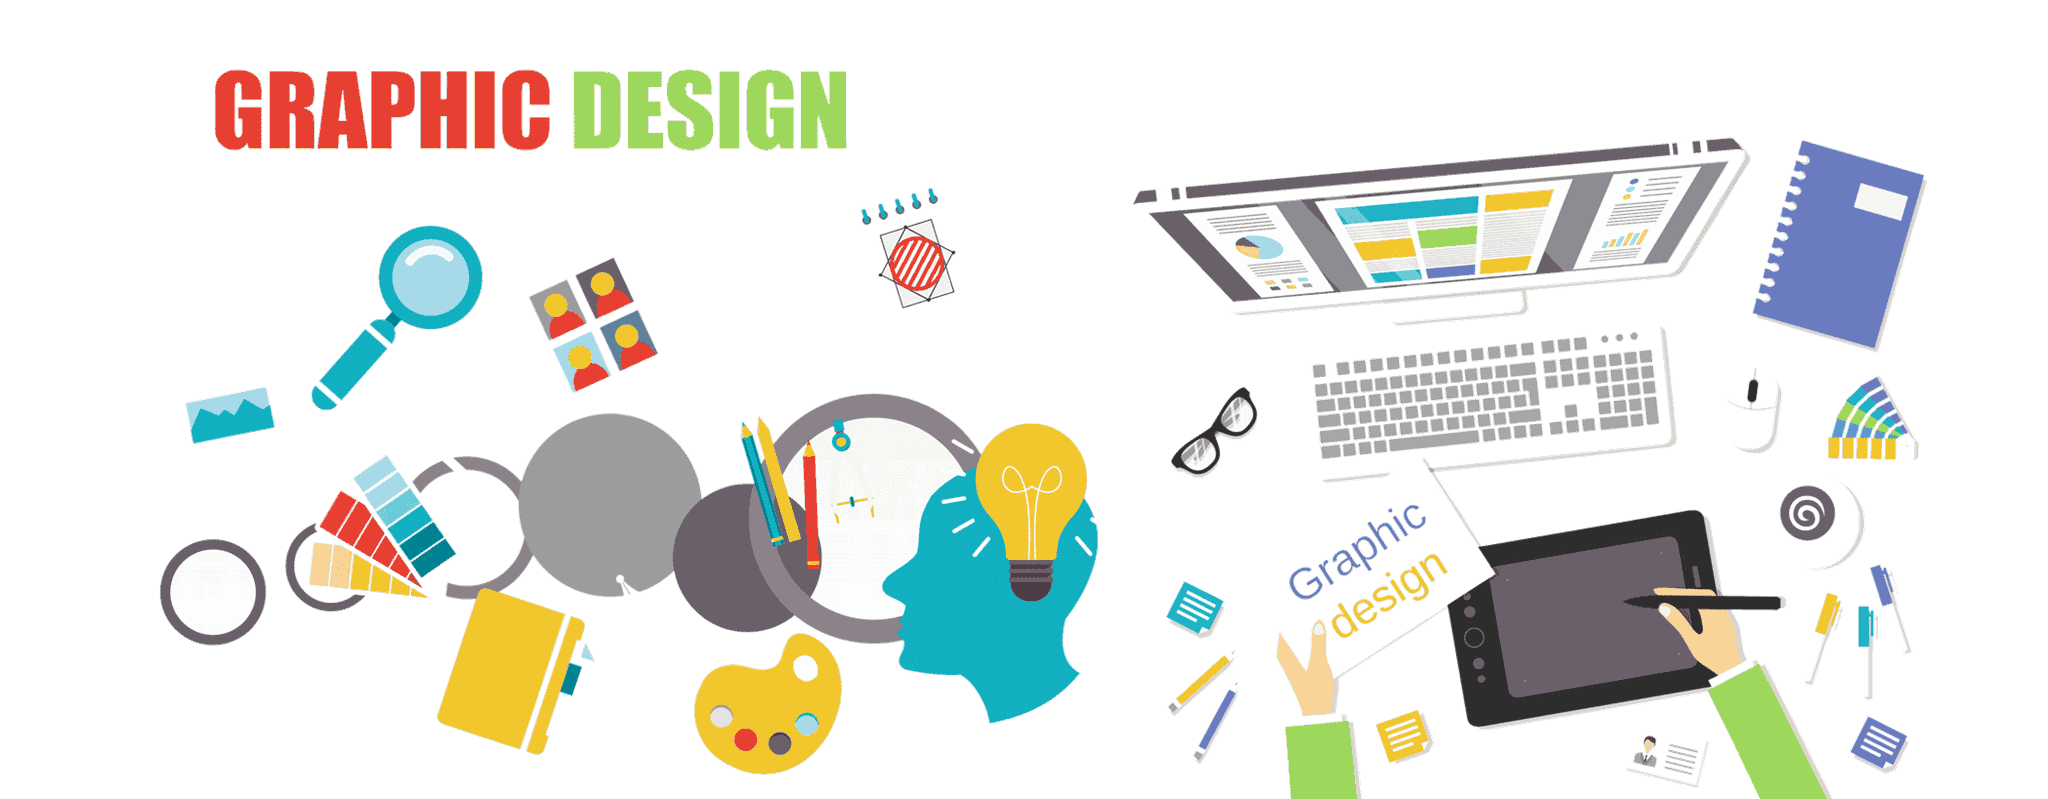 best graphic design company in varanasi